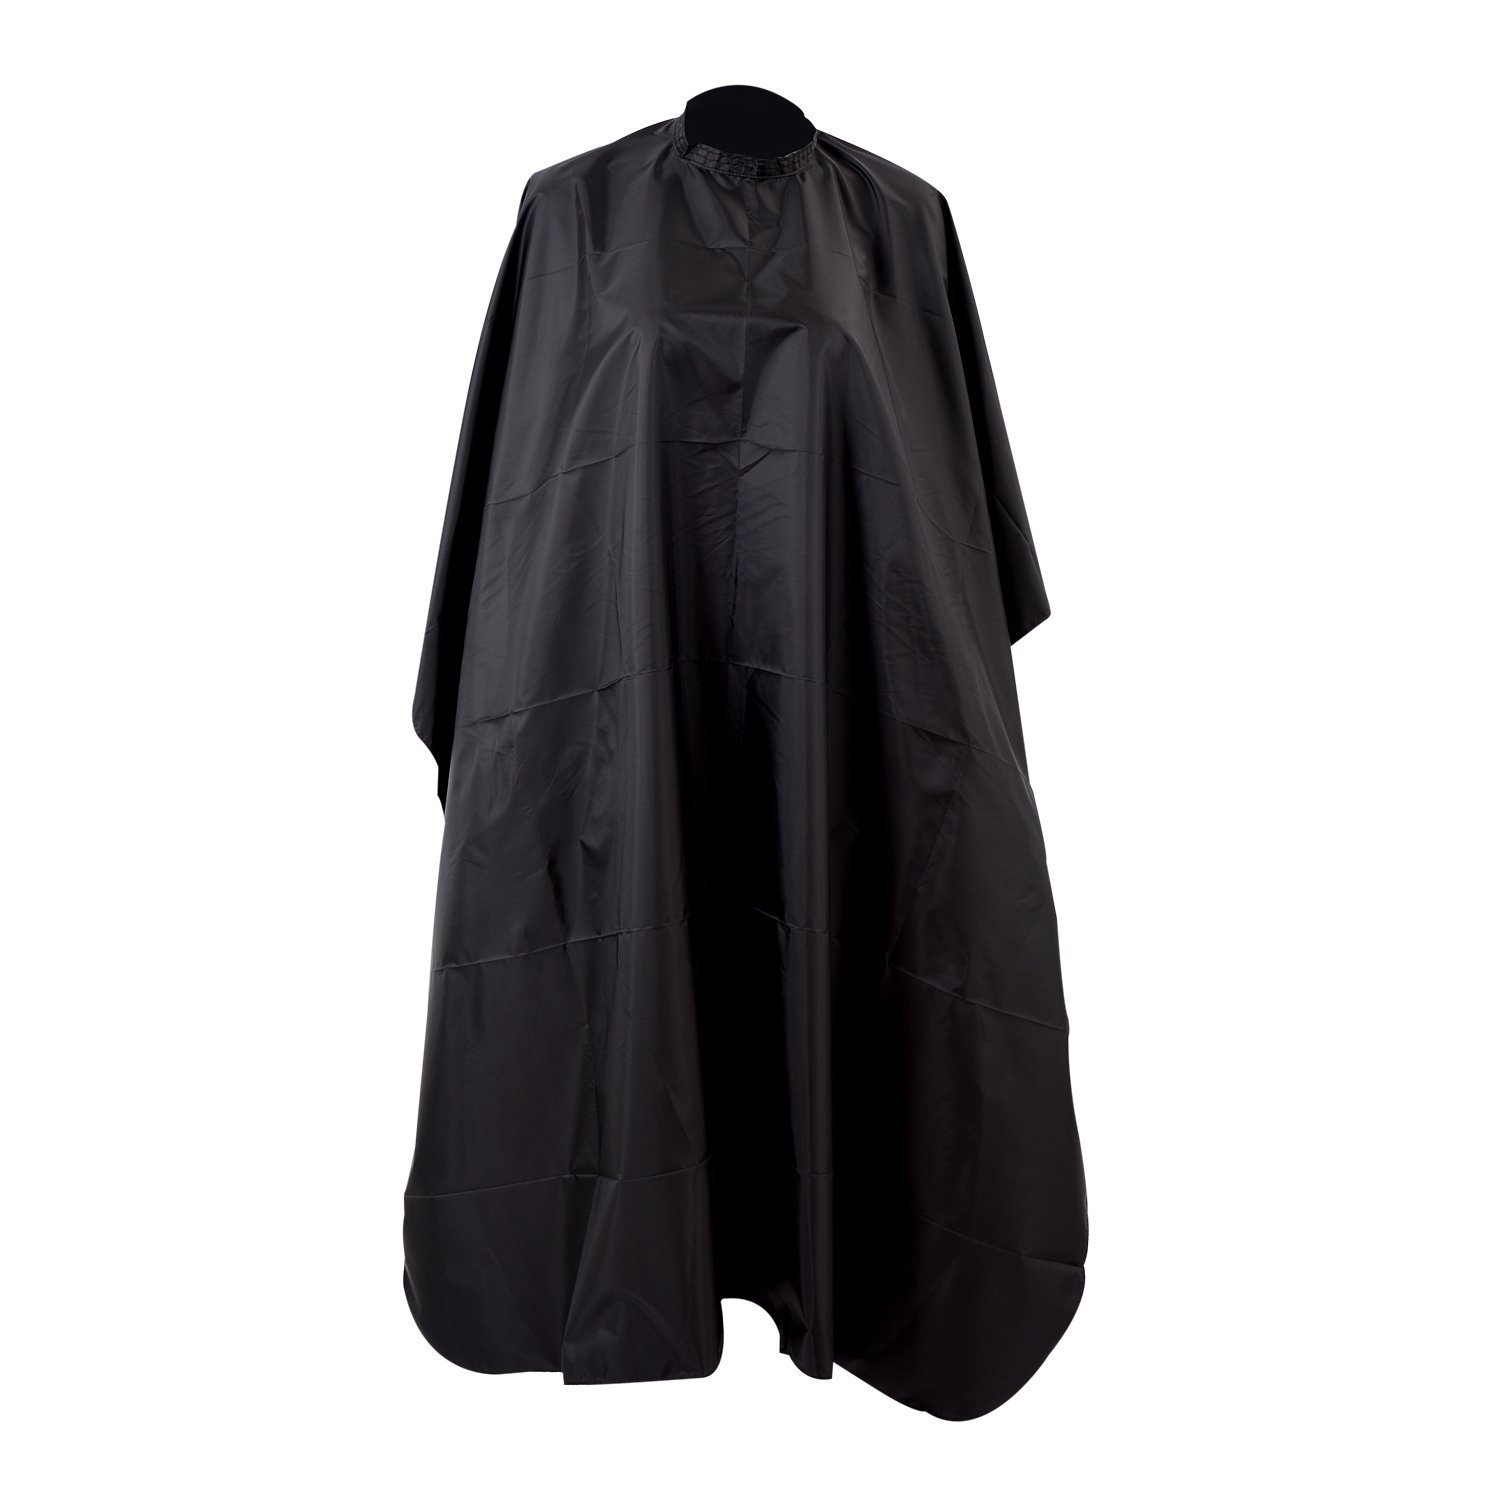 Toogoo(R) Black Hair Cut Hairdressing Hairdressers Barbers Cape Gown